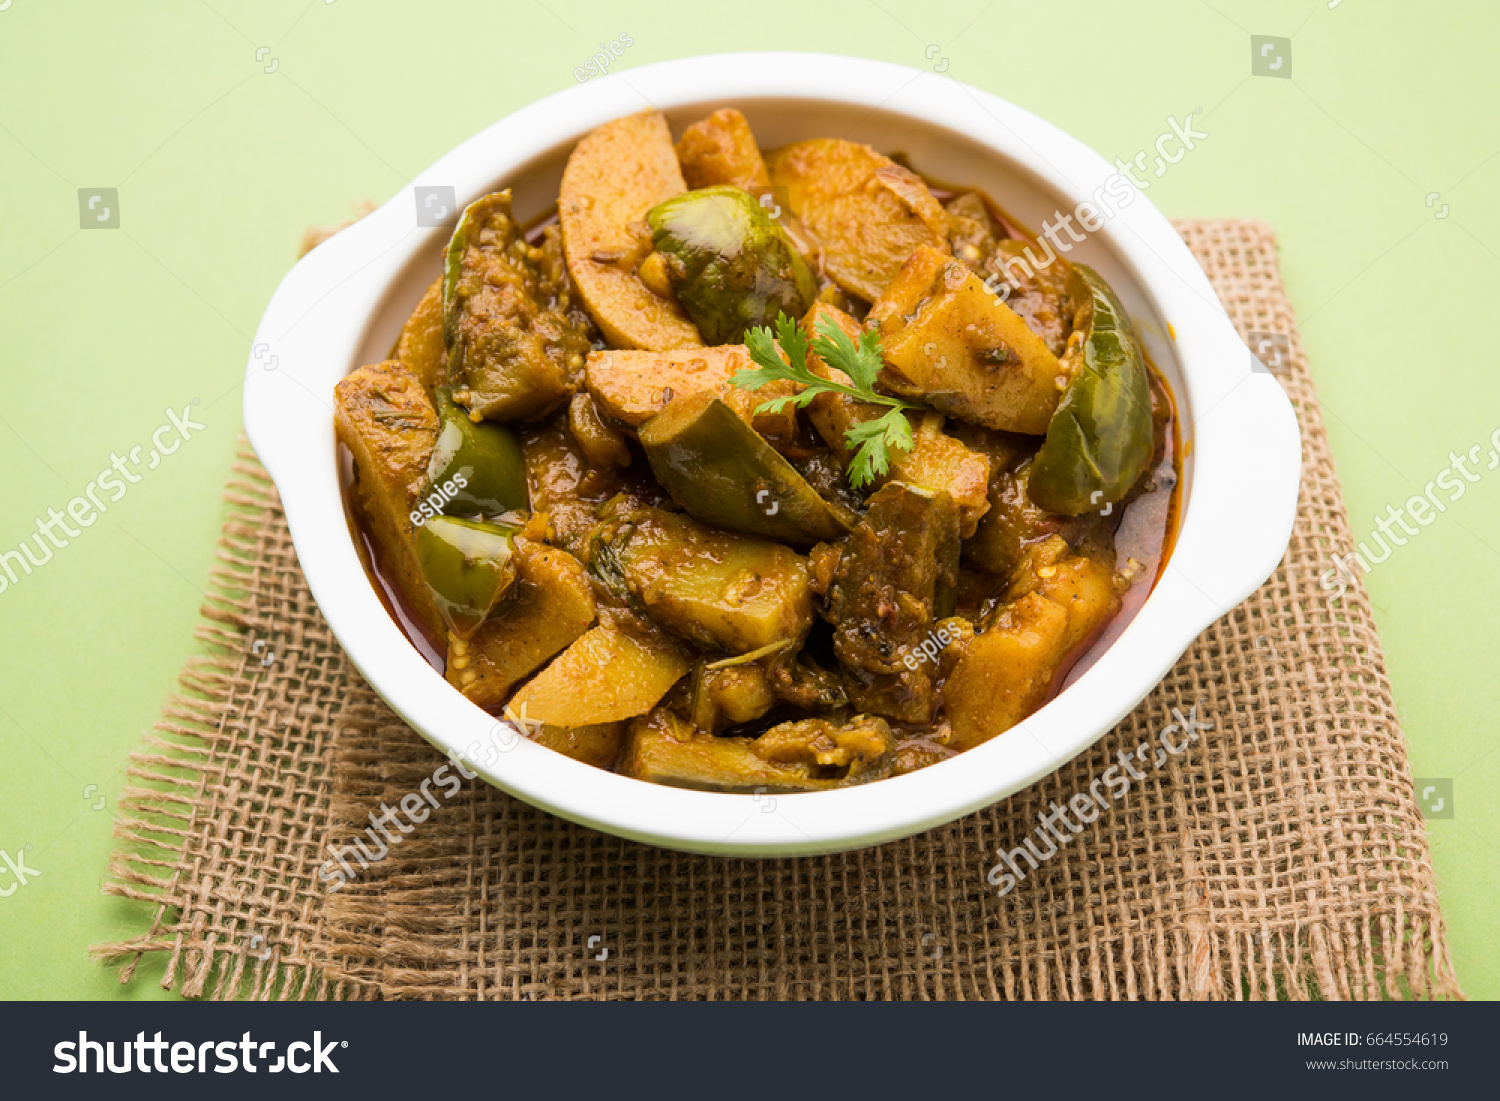 Homemade indian spicy eggplant potato curry stock photo edit now homemade indian spicy eggplant and potato curry also known as aloo baigan ki sabzi in hindi forumfinder Choice Image